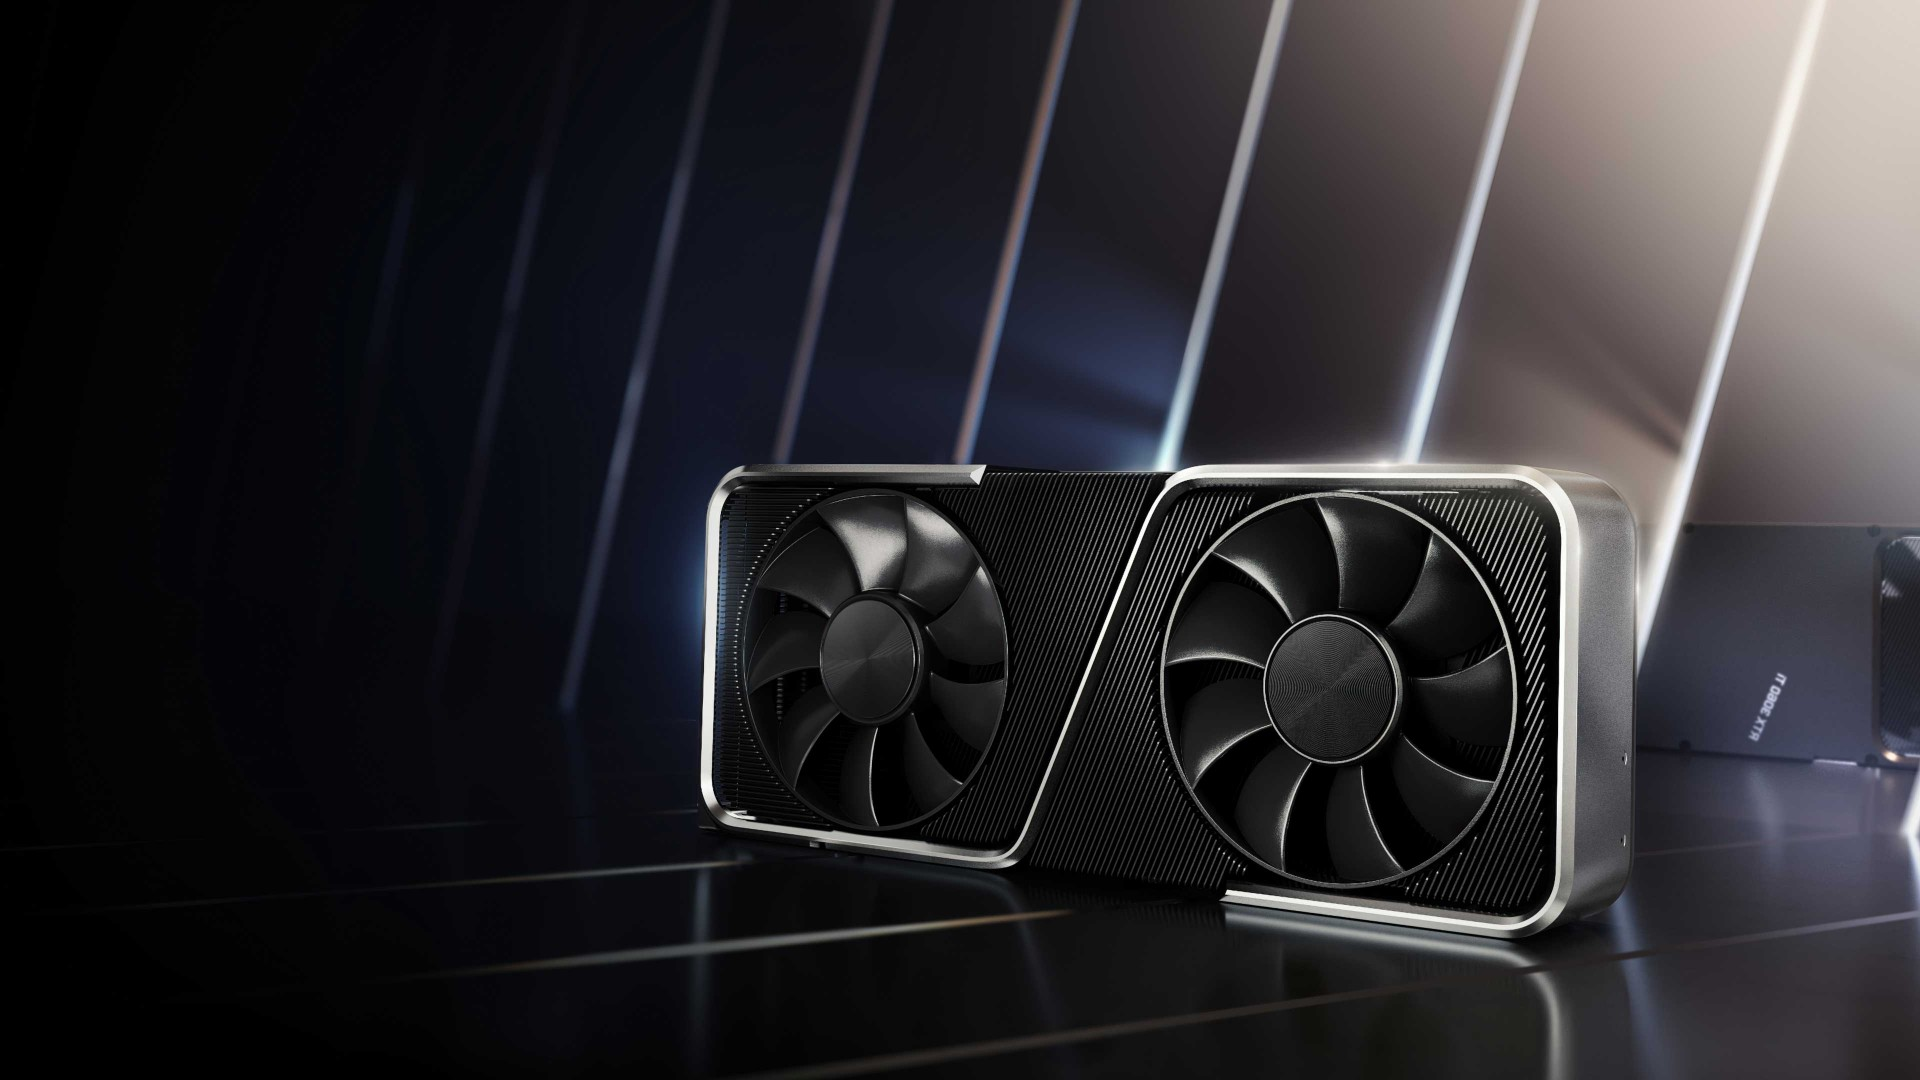 Nvidia triples the expected revenue of its crypto mining GPUs amid a strong Q1